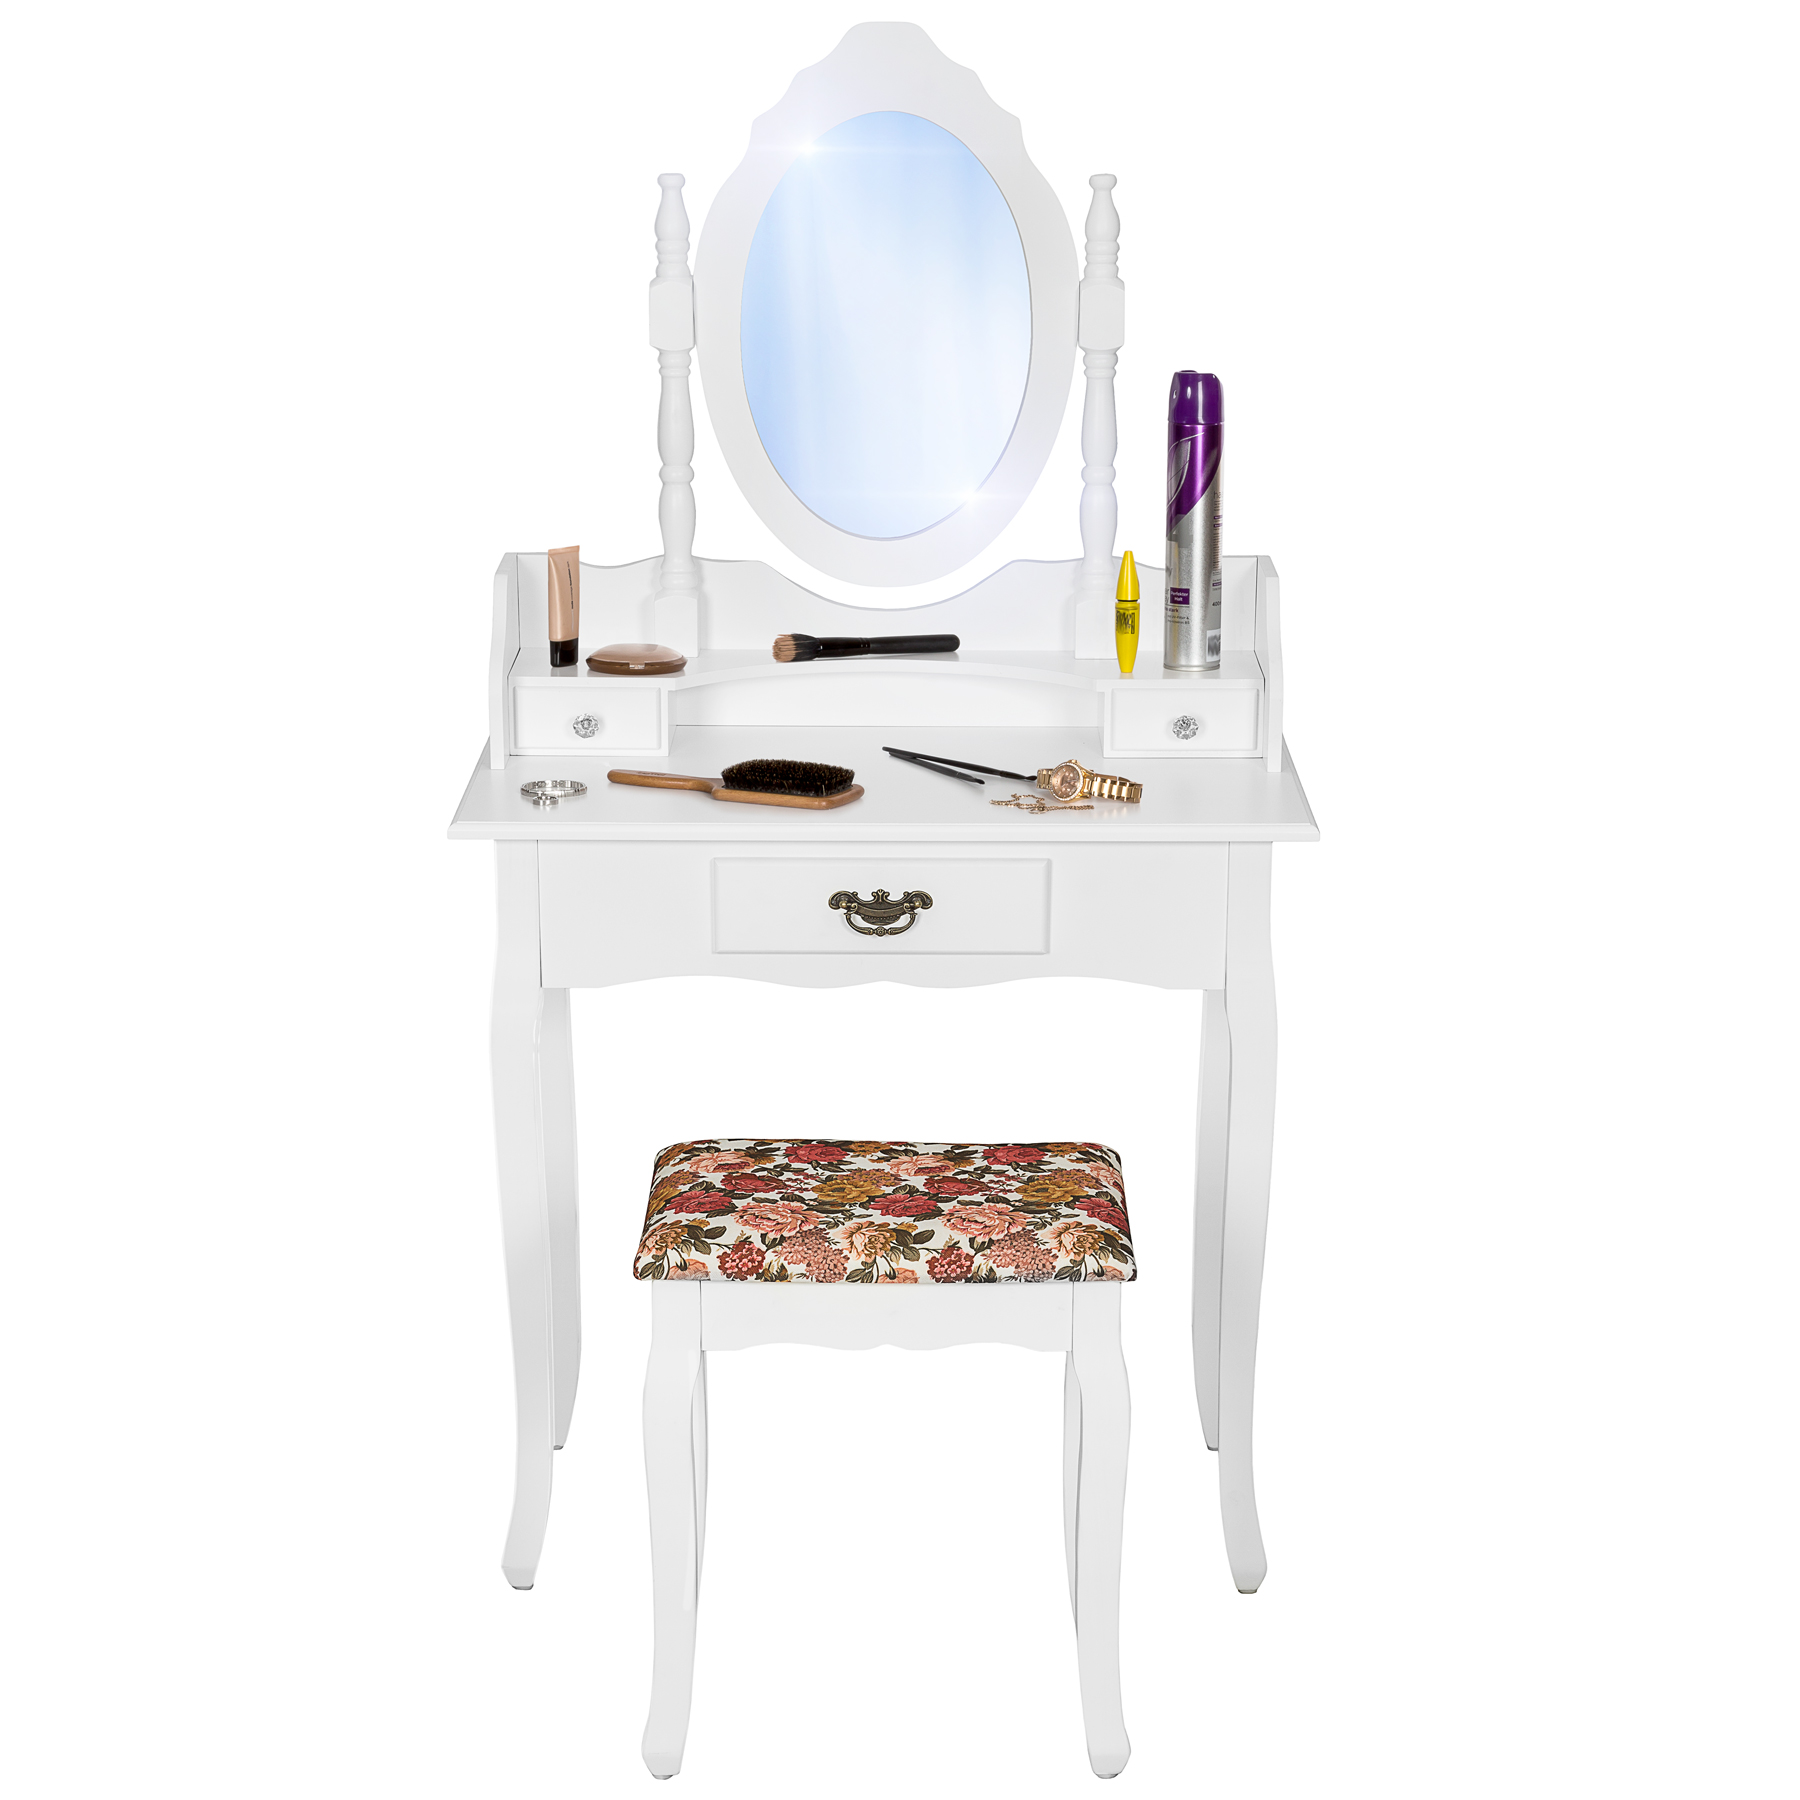 coiffeuse blanche tabouret table de maquillage avec miroir commode coiffeur. Black Bedroom Furniture Sets. Home Design Ideas